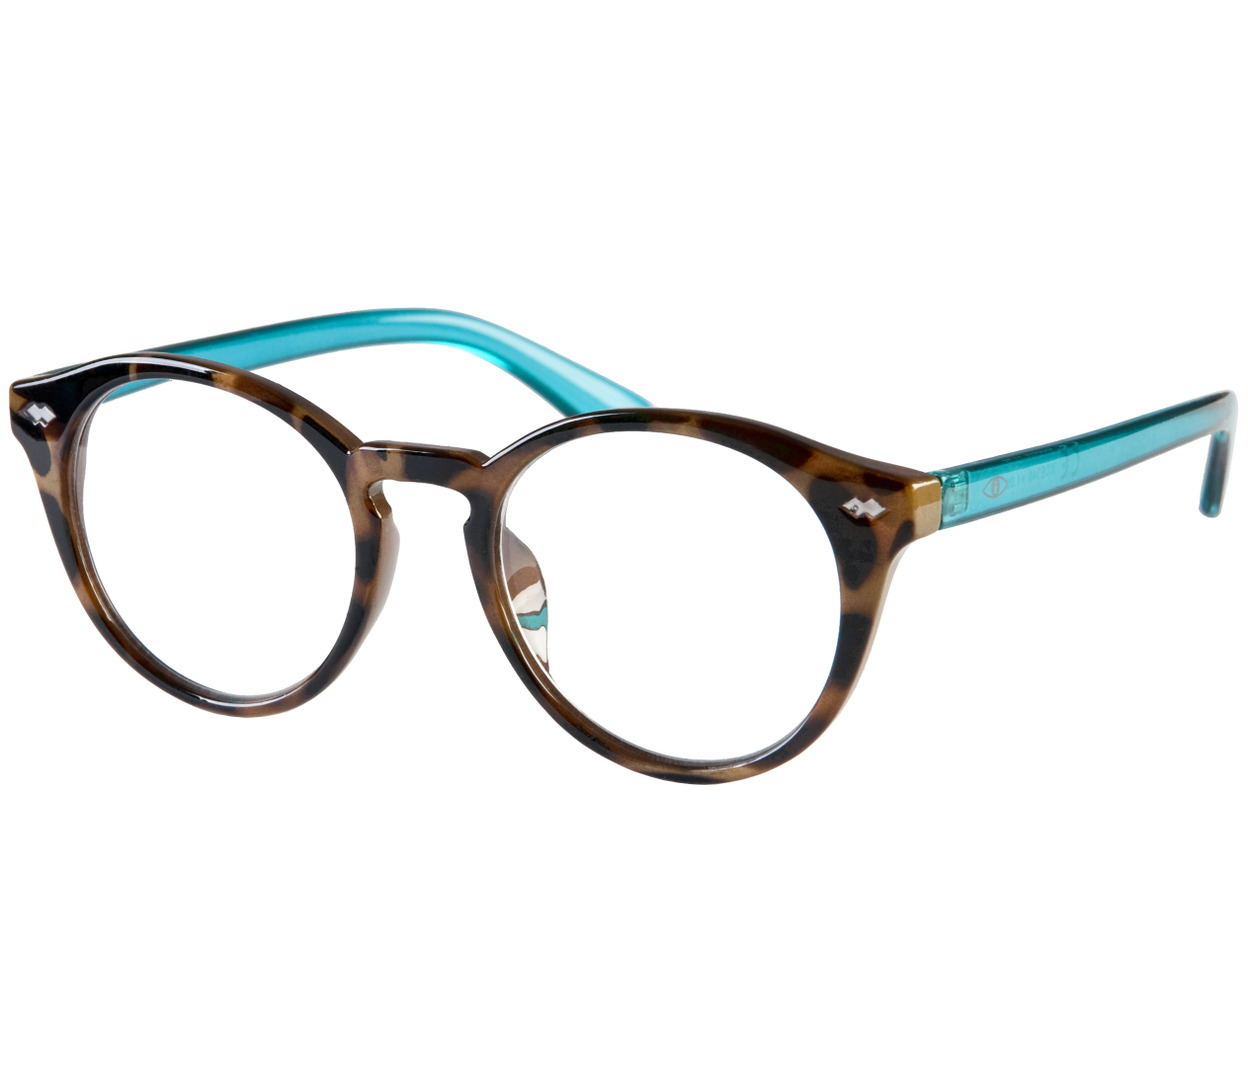 Elroy (Tortoiseshell) Retro Reading Glasses